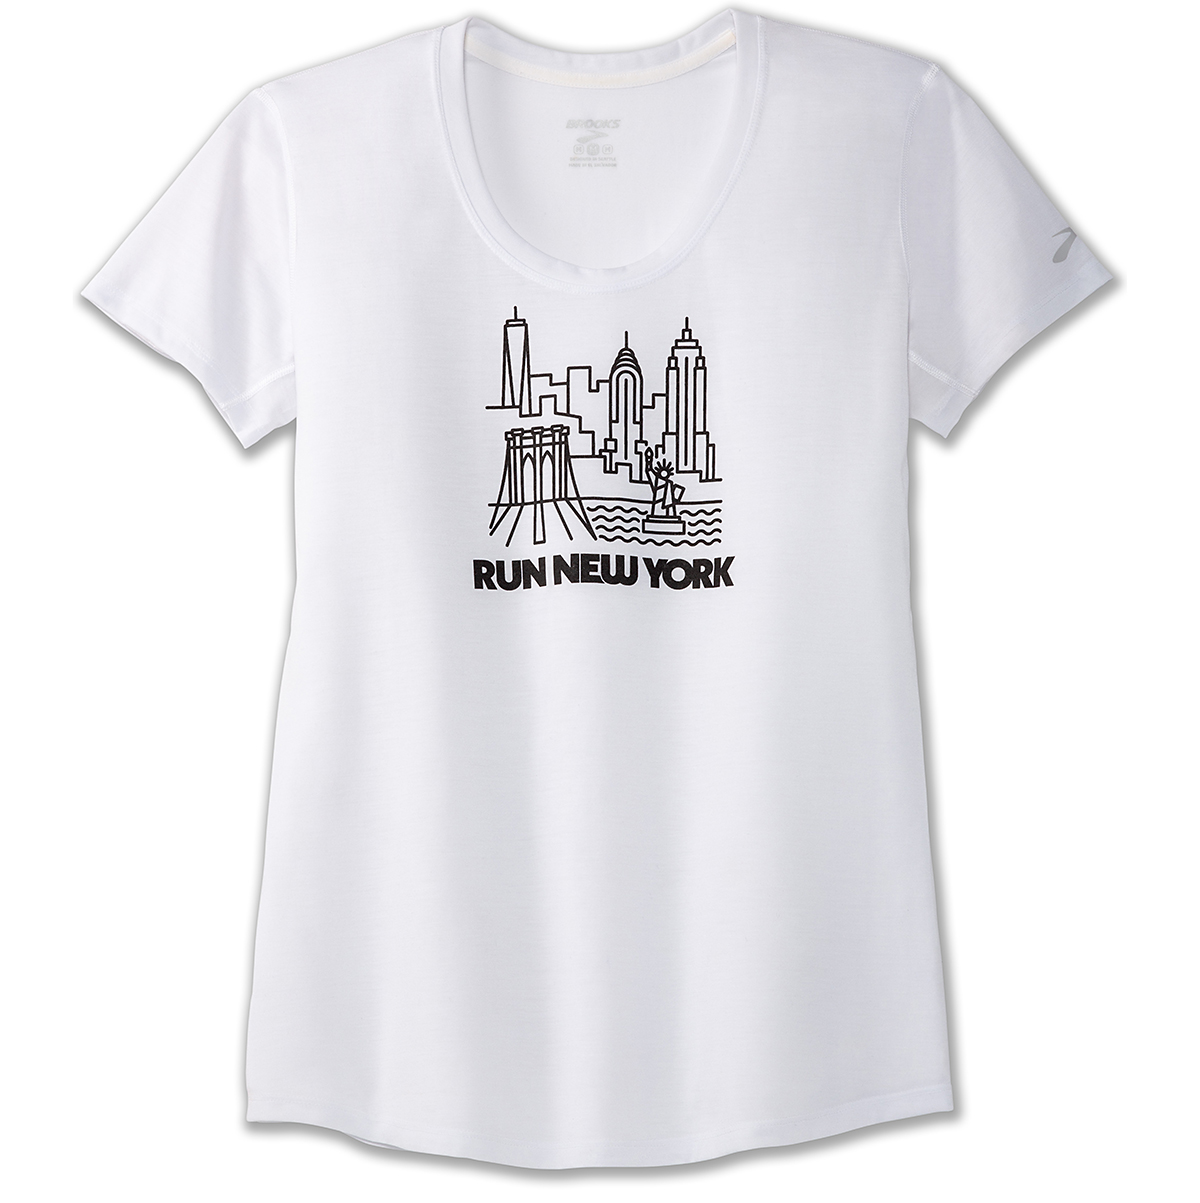 Women's Brooks Distance Graphic Tee - Color: White/Run Nyc - Size: XS, White/Run Nyc, large, image 3